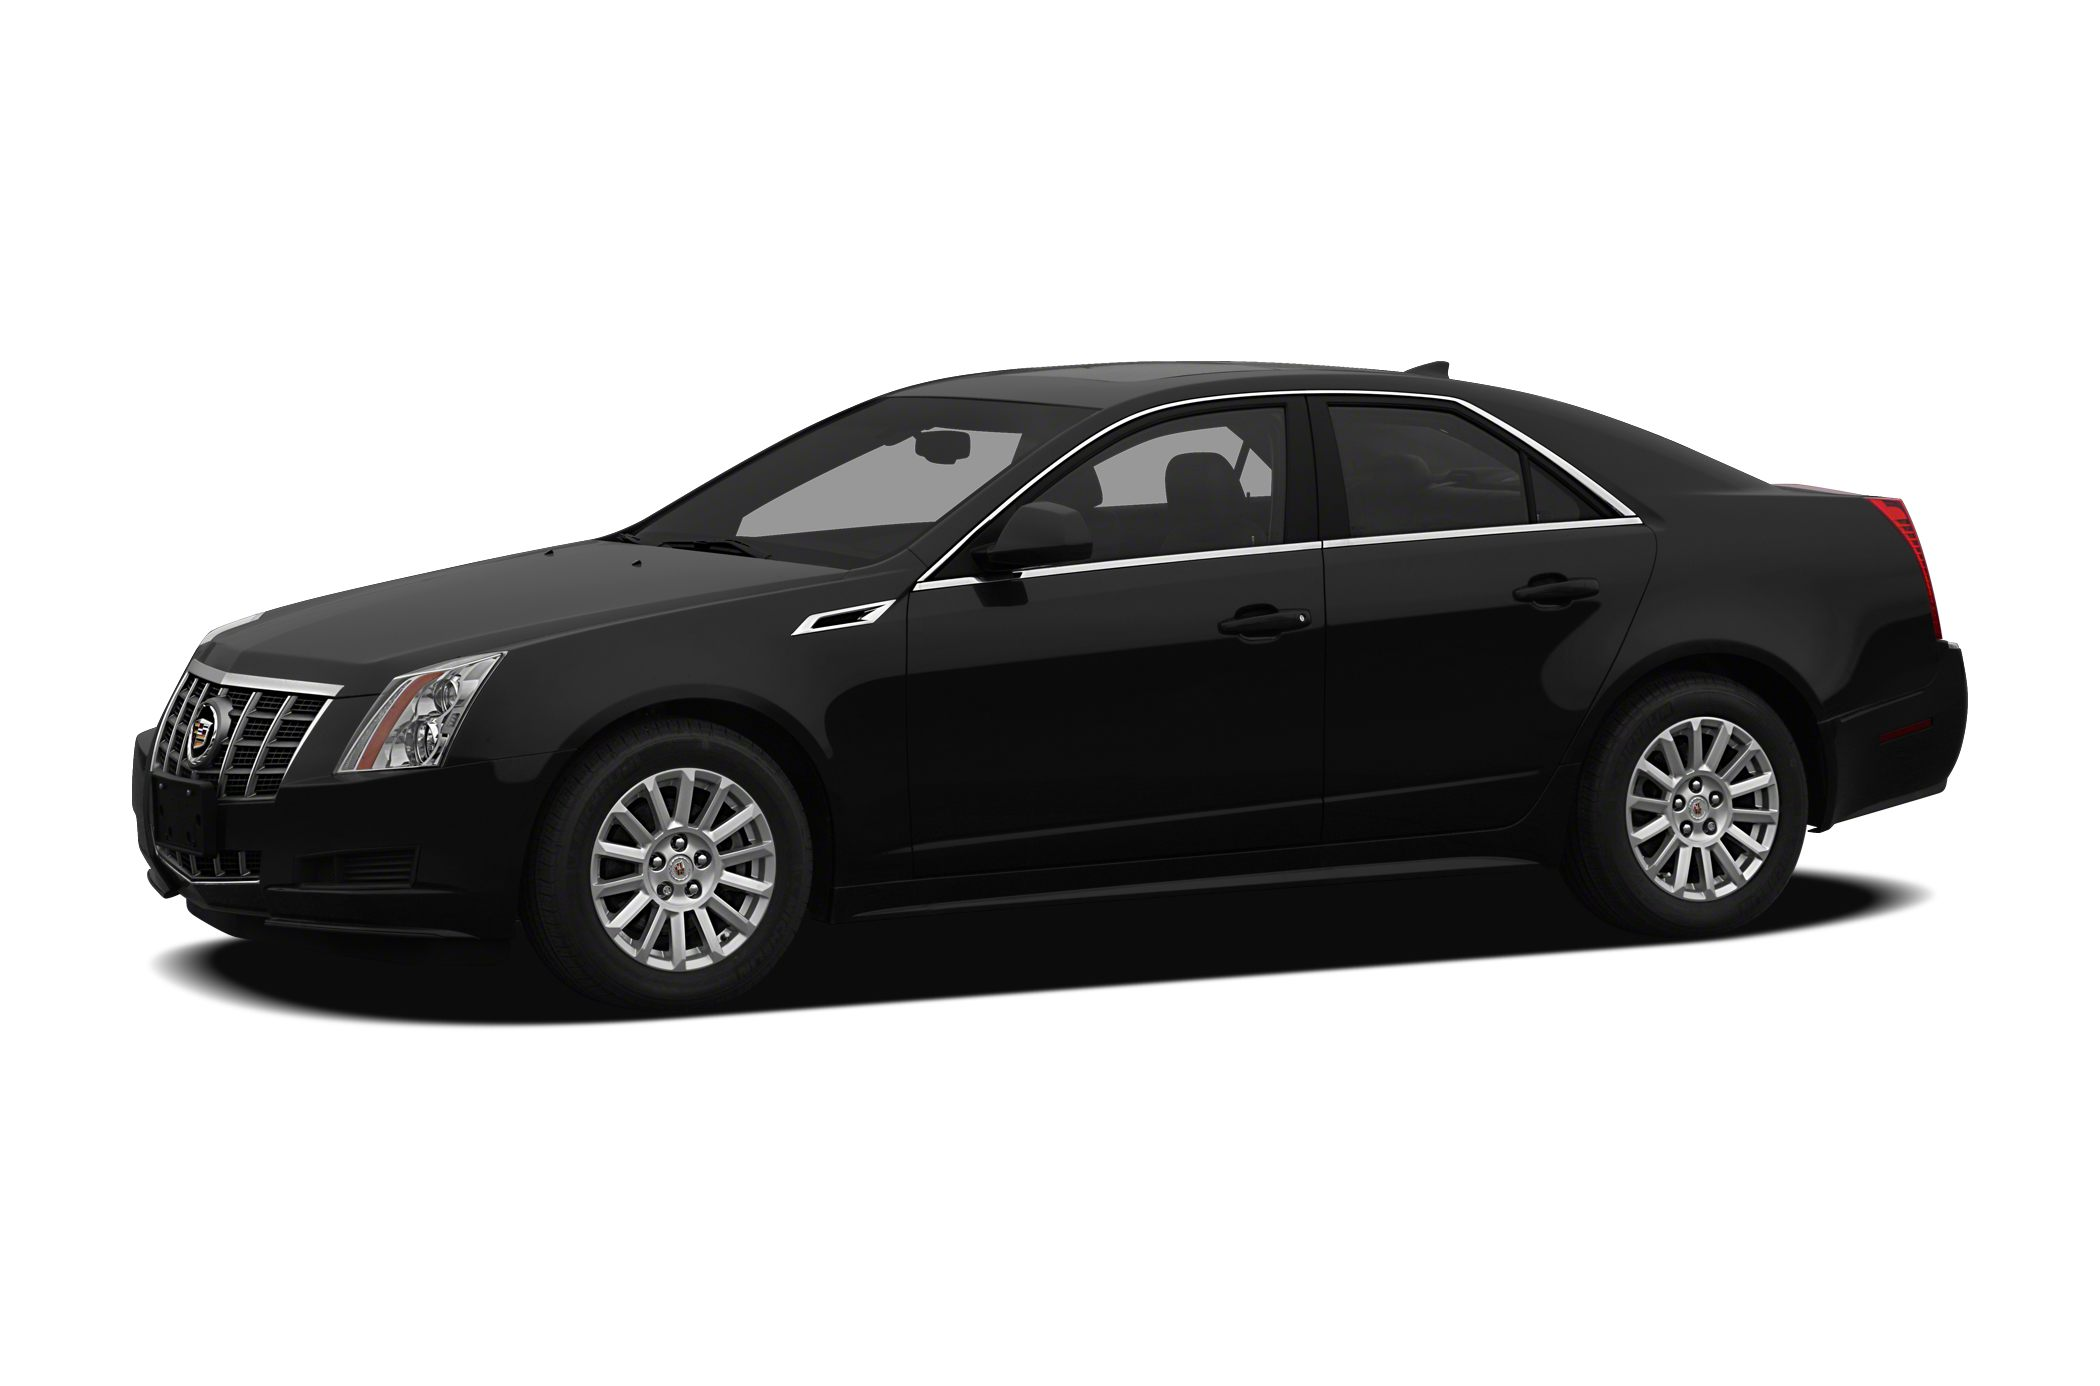 2012 Cadillac CTS Base Coupe for sale in Overland Park for $26,900 with 40,914 miles